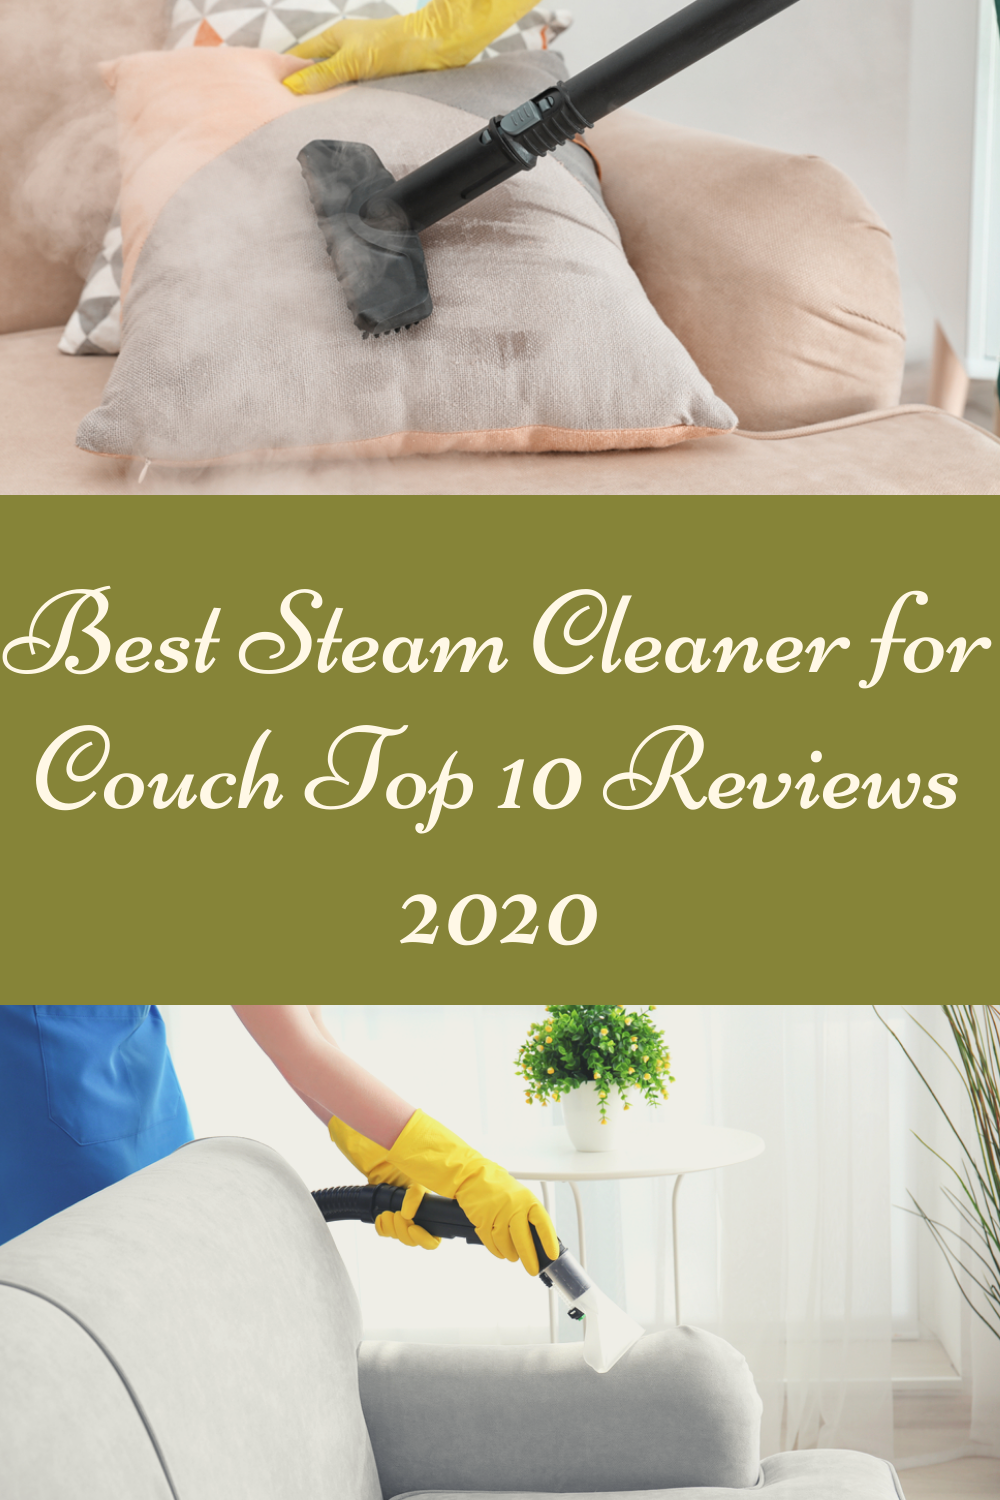 Best Steam Cleaner For Couch Top 10 Reviews 2020 In 2020 Best